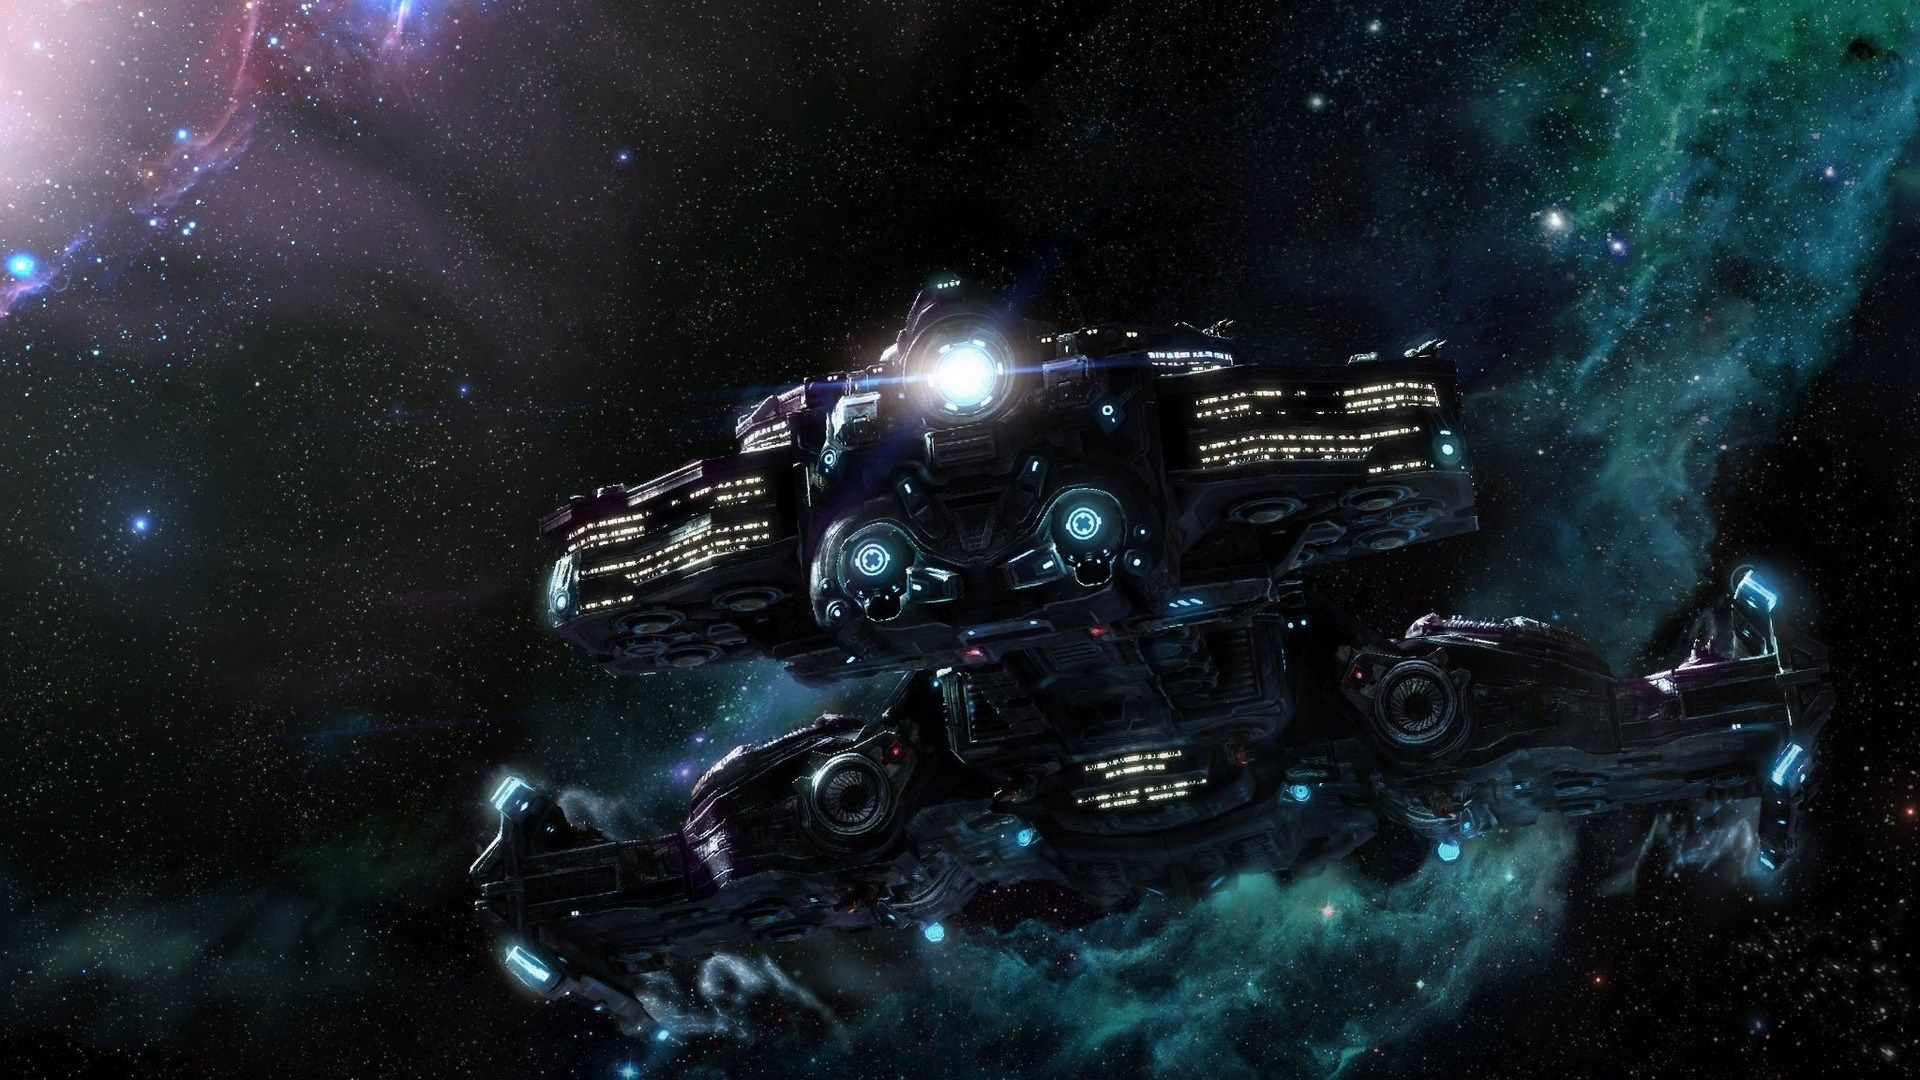 Starcraft Ii Wings Of Liberty Wallpaper Pictures Free